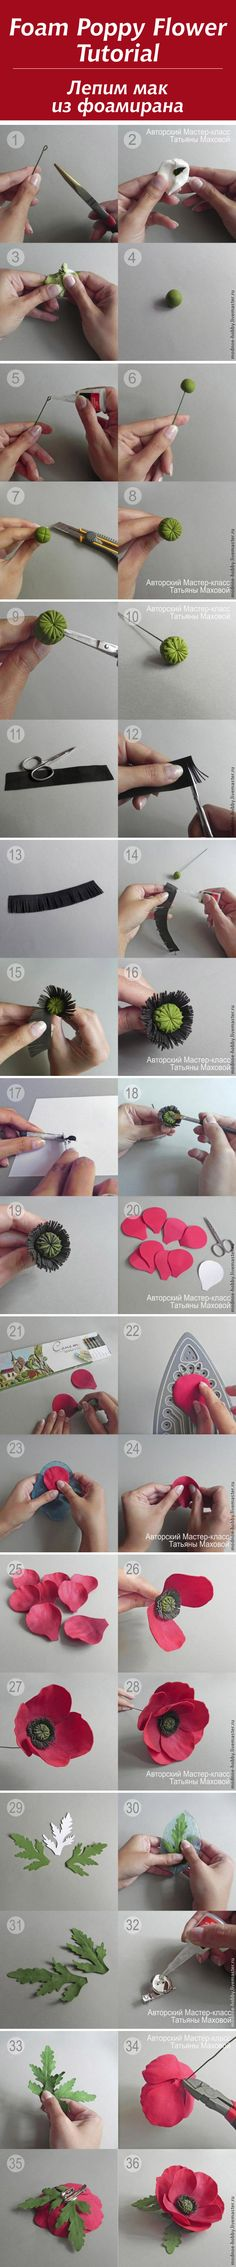 Not sure if that's polymer clay or something else.  Great idea: Polymer clay centers for paper poppies.